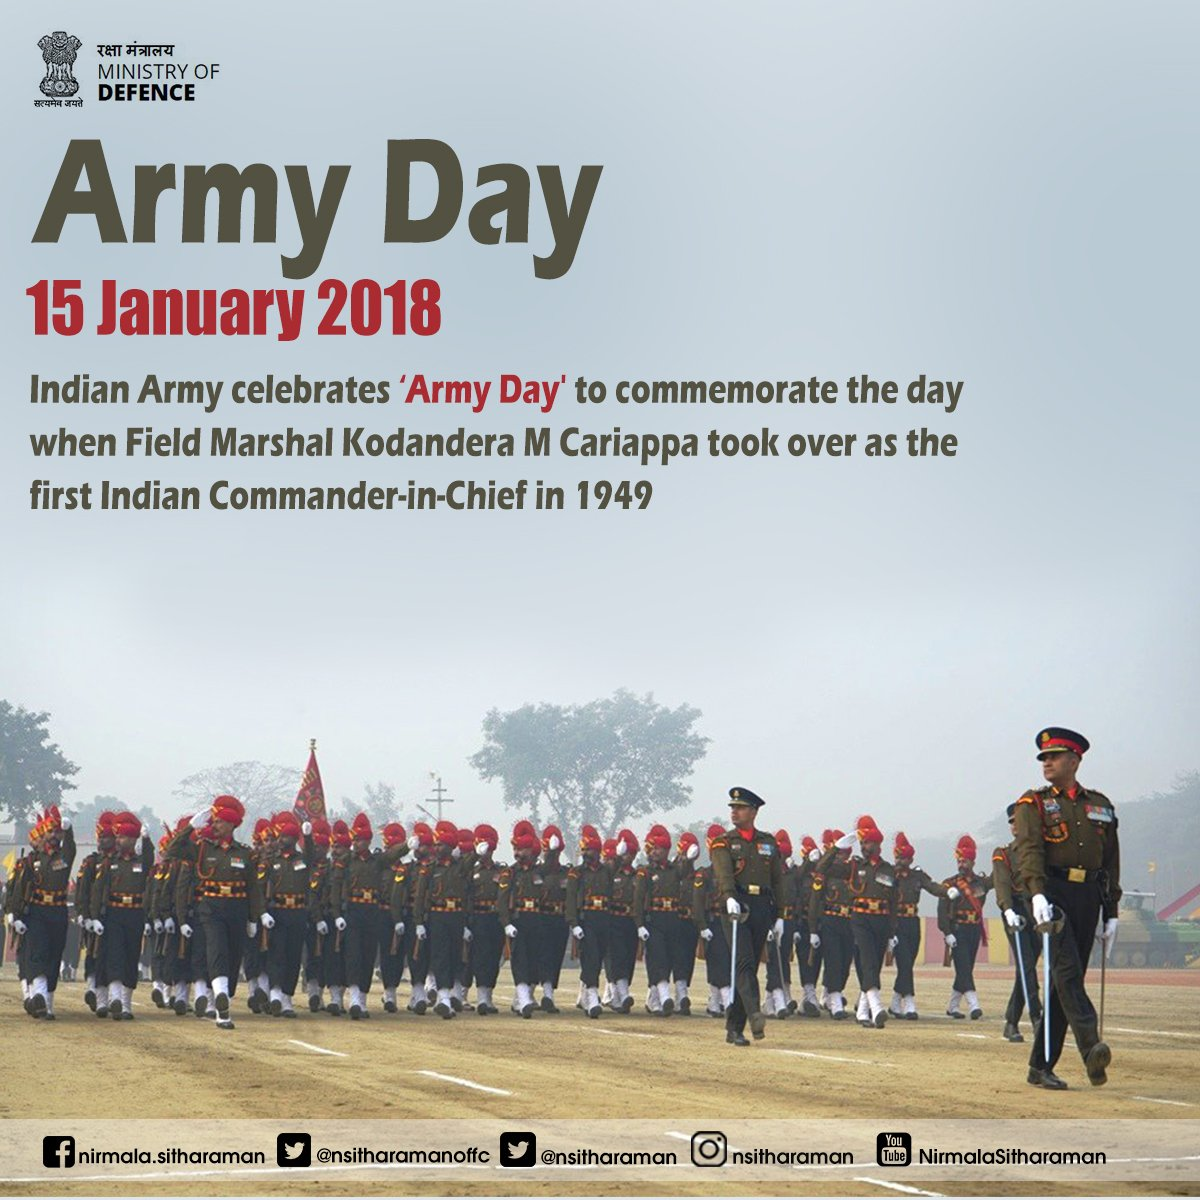 Smt @nsitharaman extends best wishes of 70th #ArmyDay to all ranks of the Indian Army. Jai Hind!  #ArmyDay2018 https://t.co/QrhzsAo74p